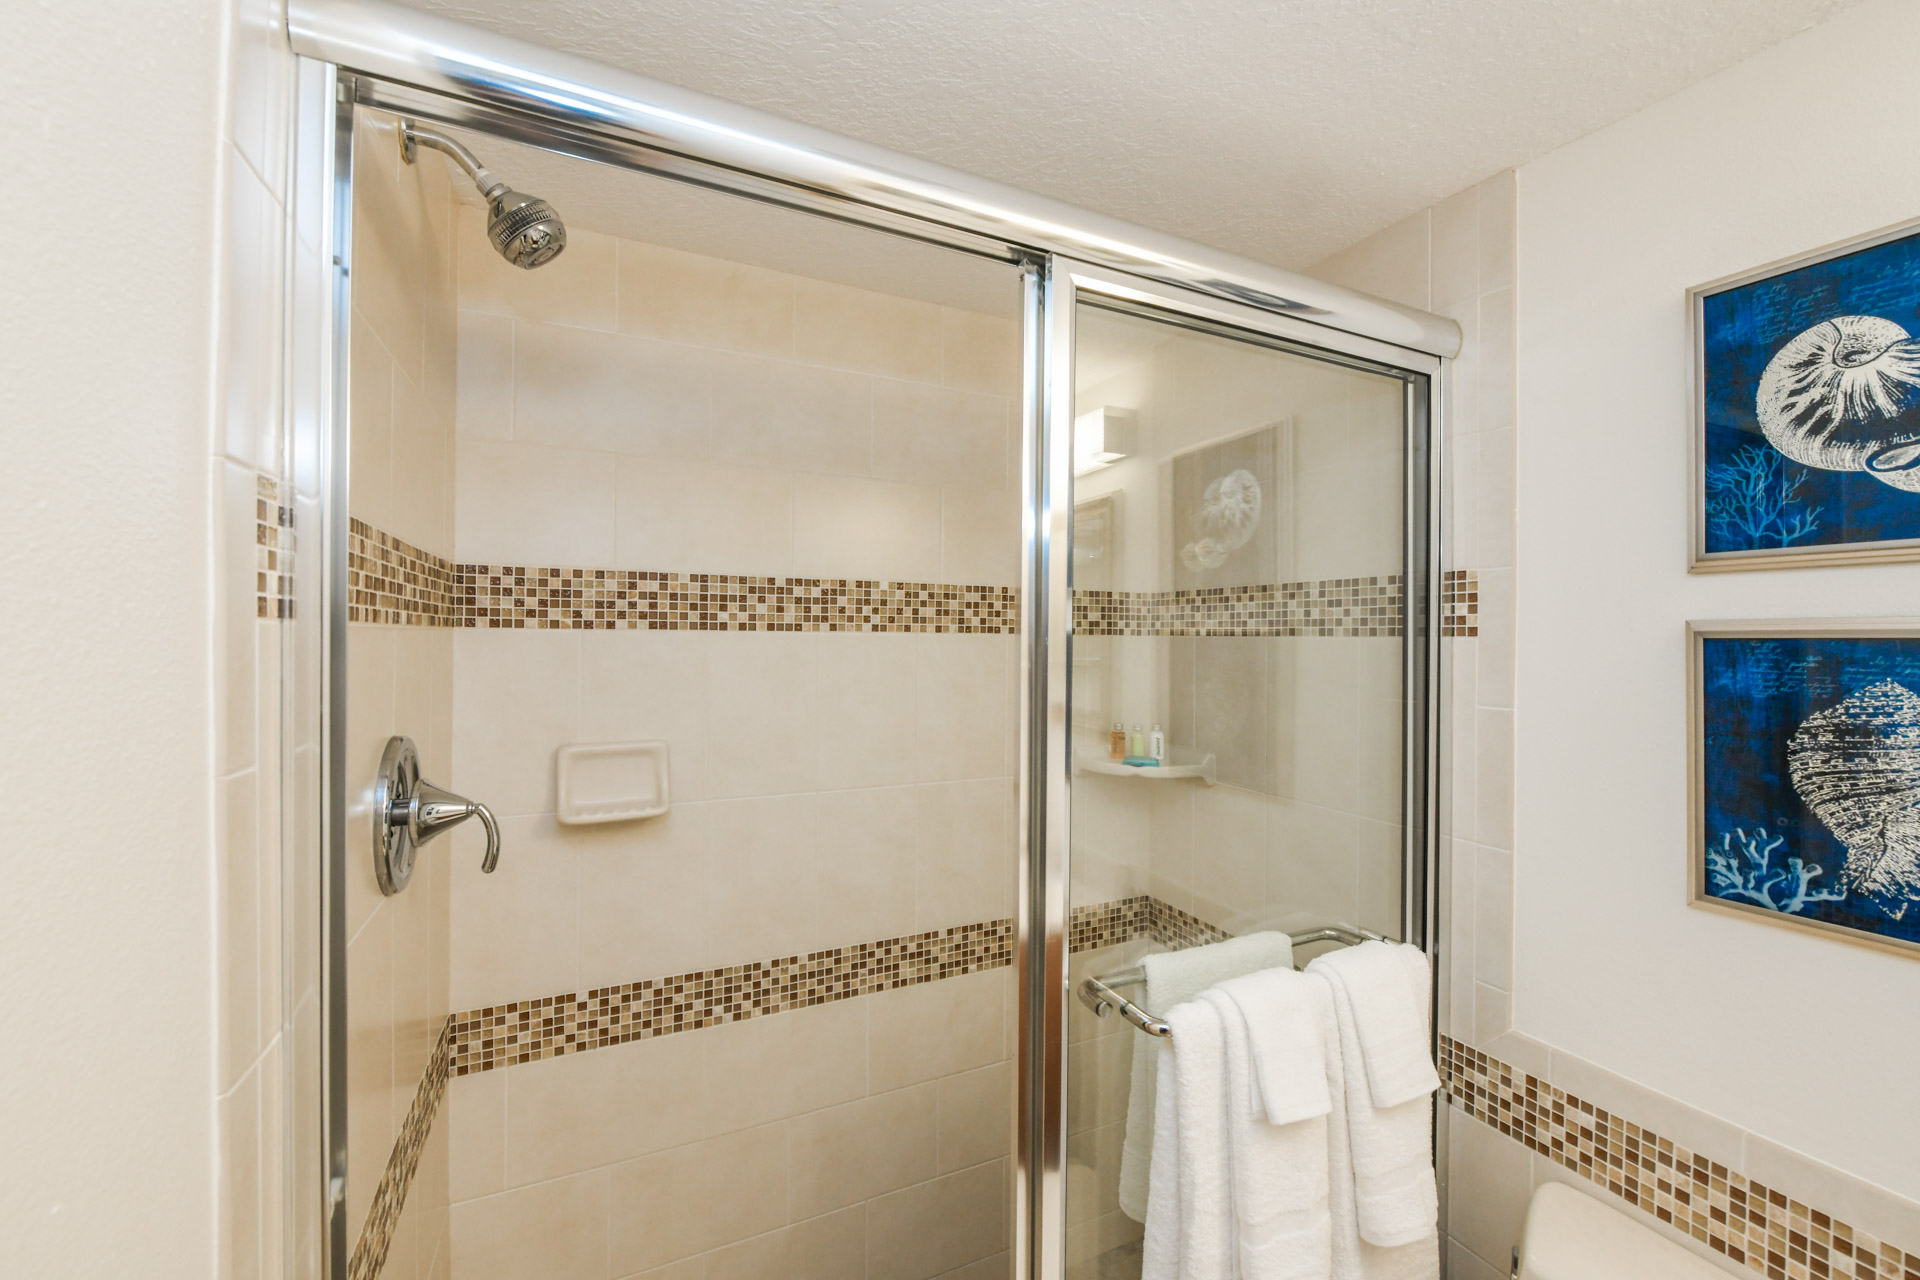 En suite bathroom with full size shower and tub